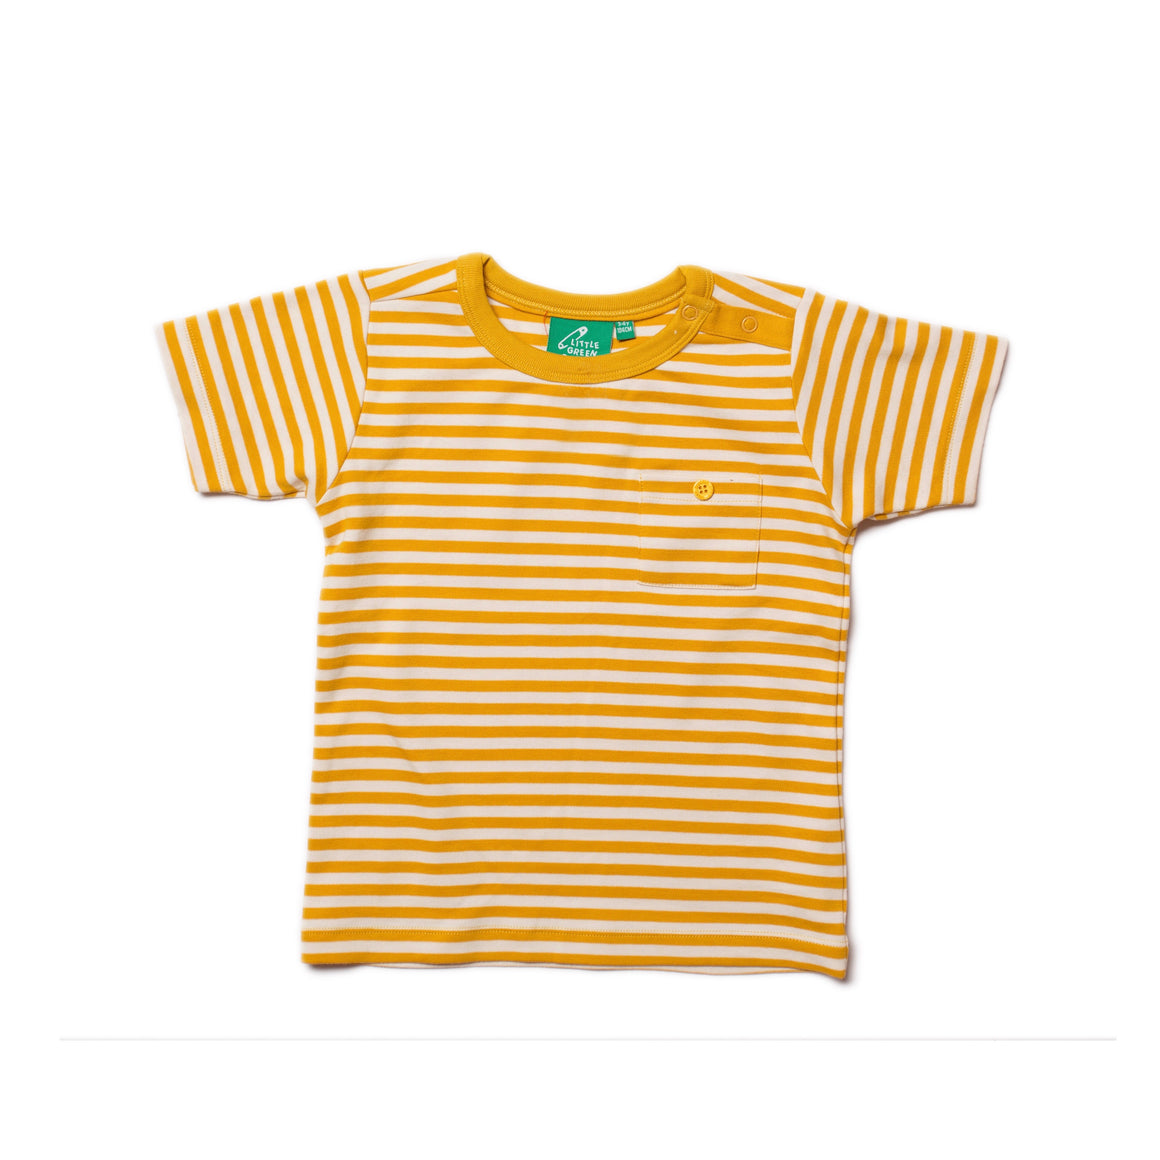 T-Shirt in Gold stripe